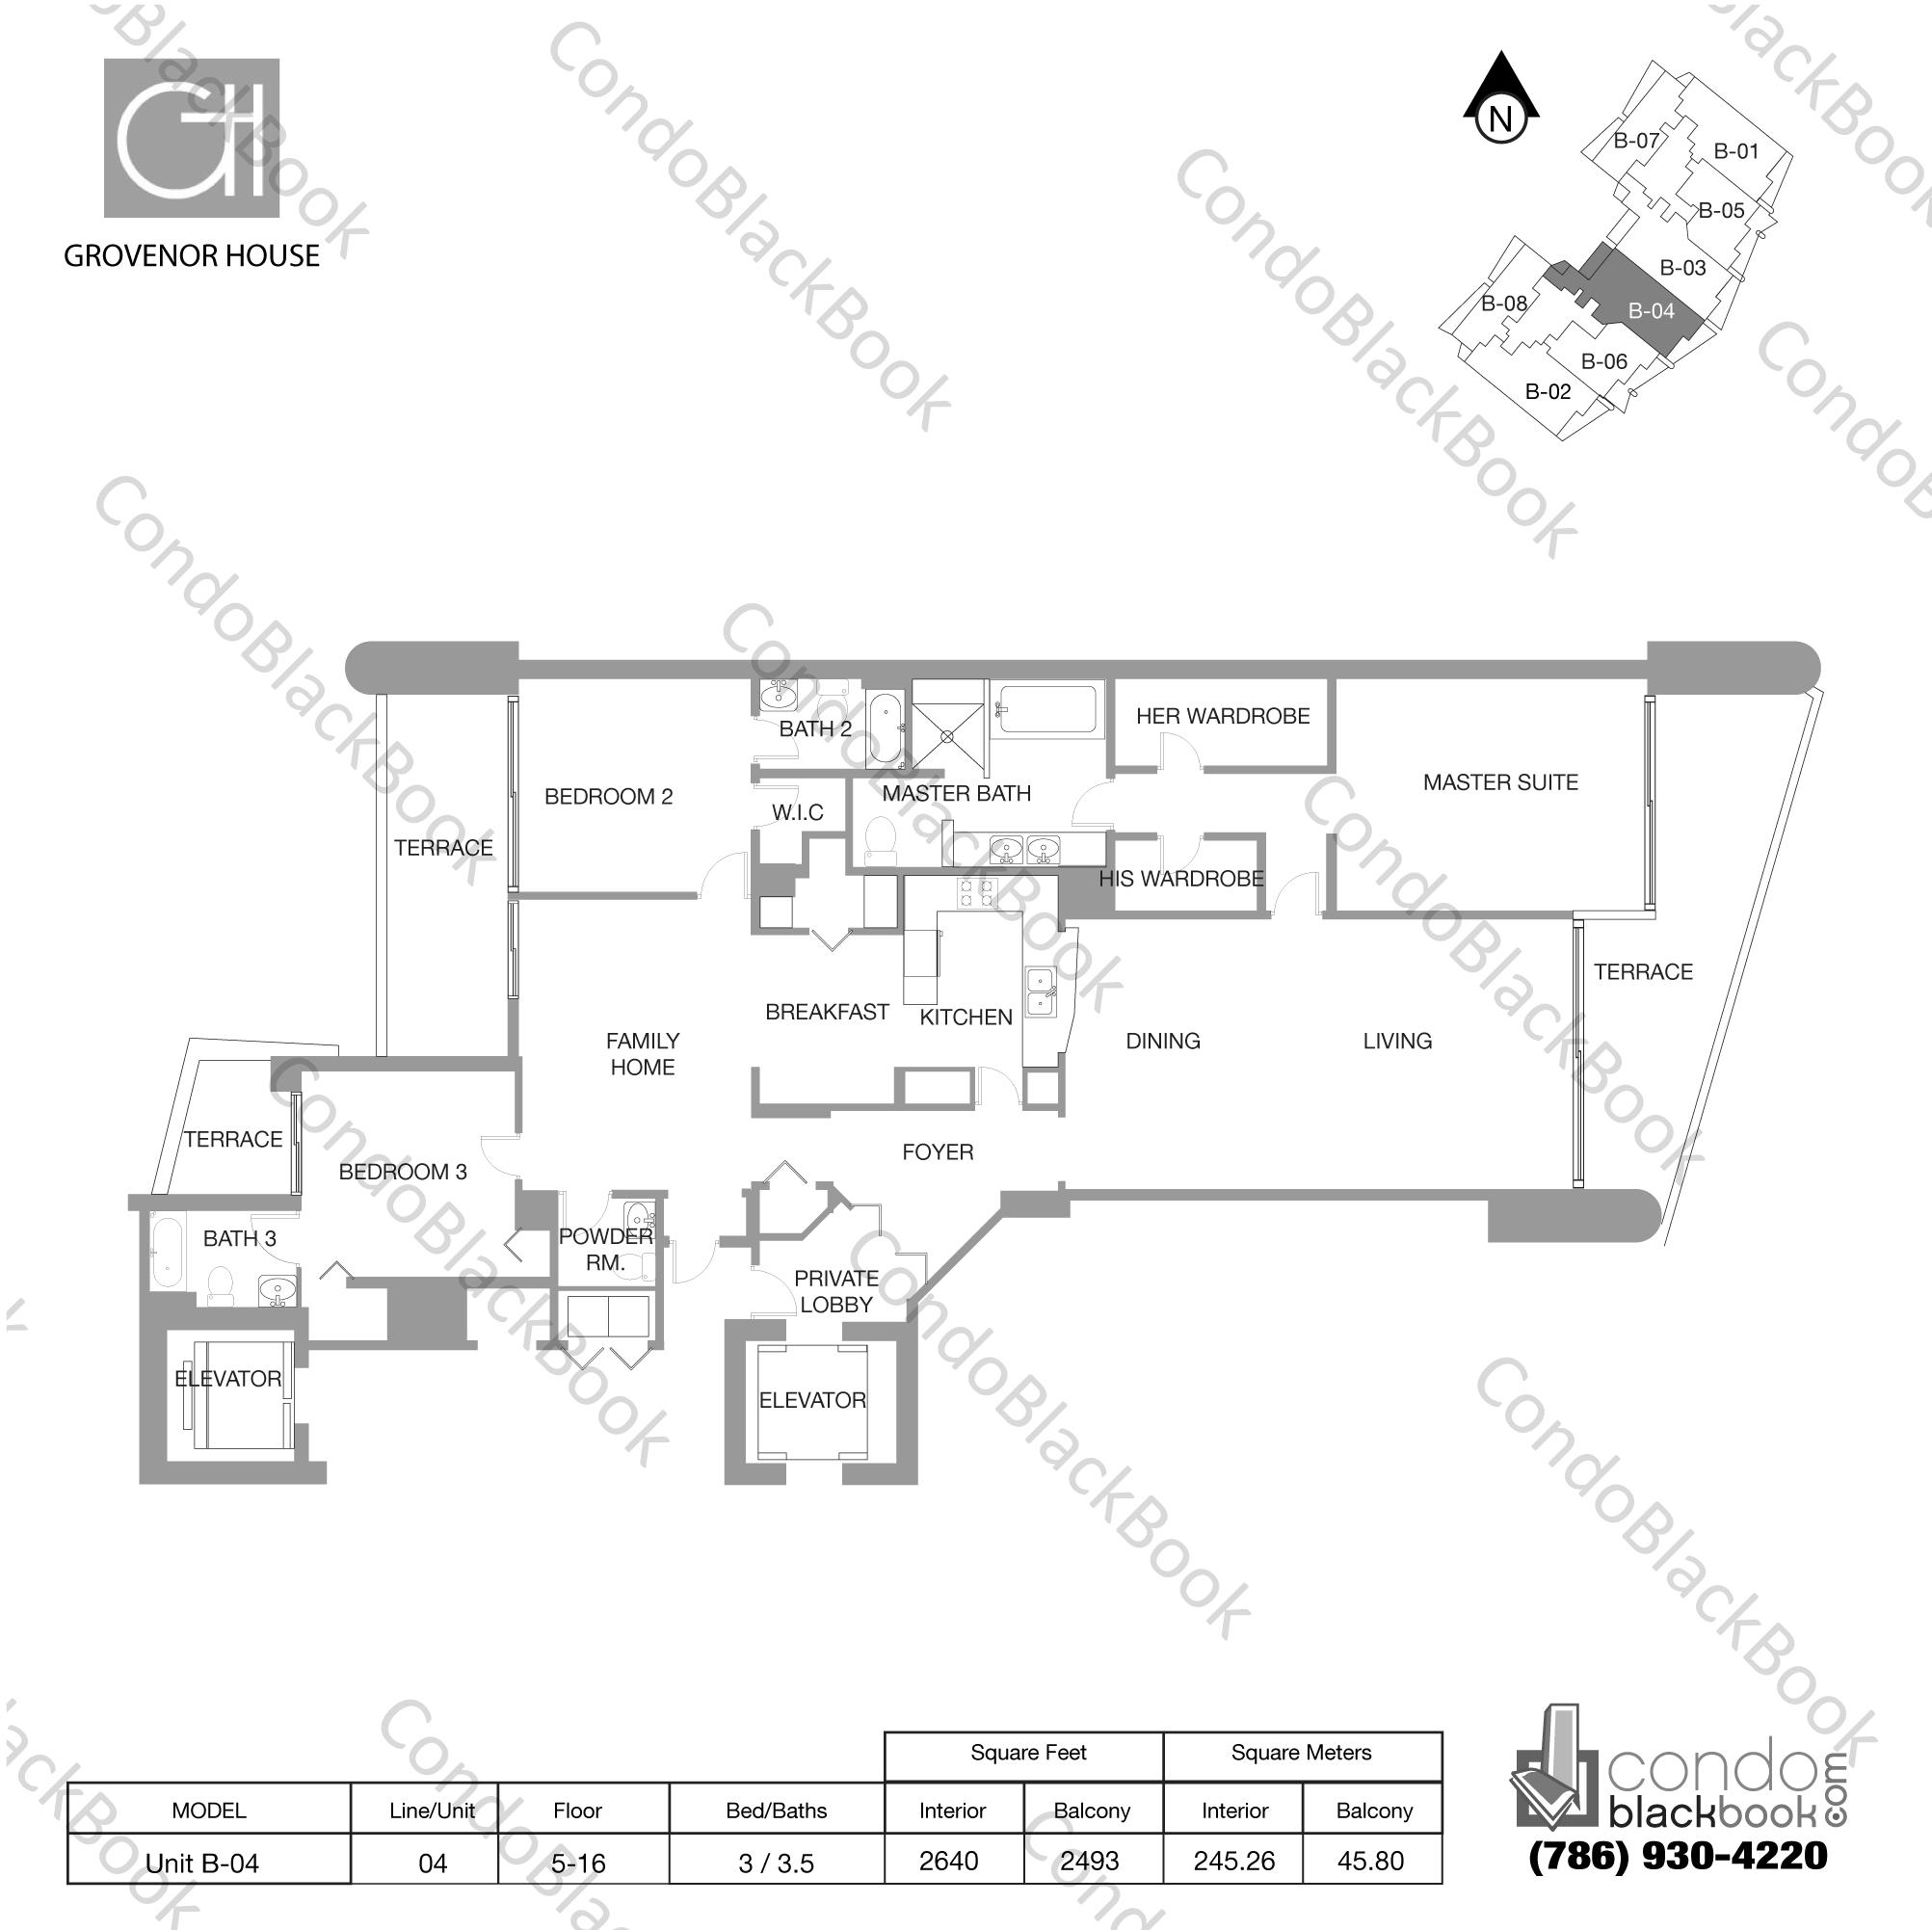 Floor plan for Grovenor House Coconut Grove Miami, model Unit B-04, line 04, 3 / 3.5 bedrooms, 2640 sq ft